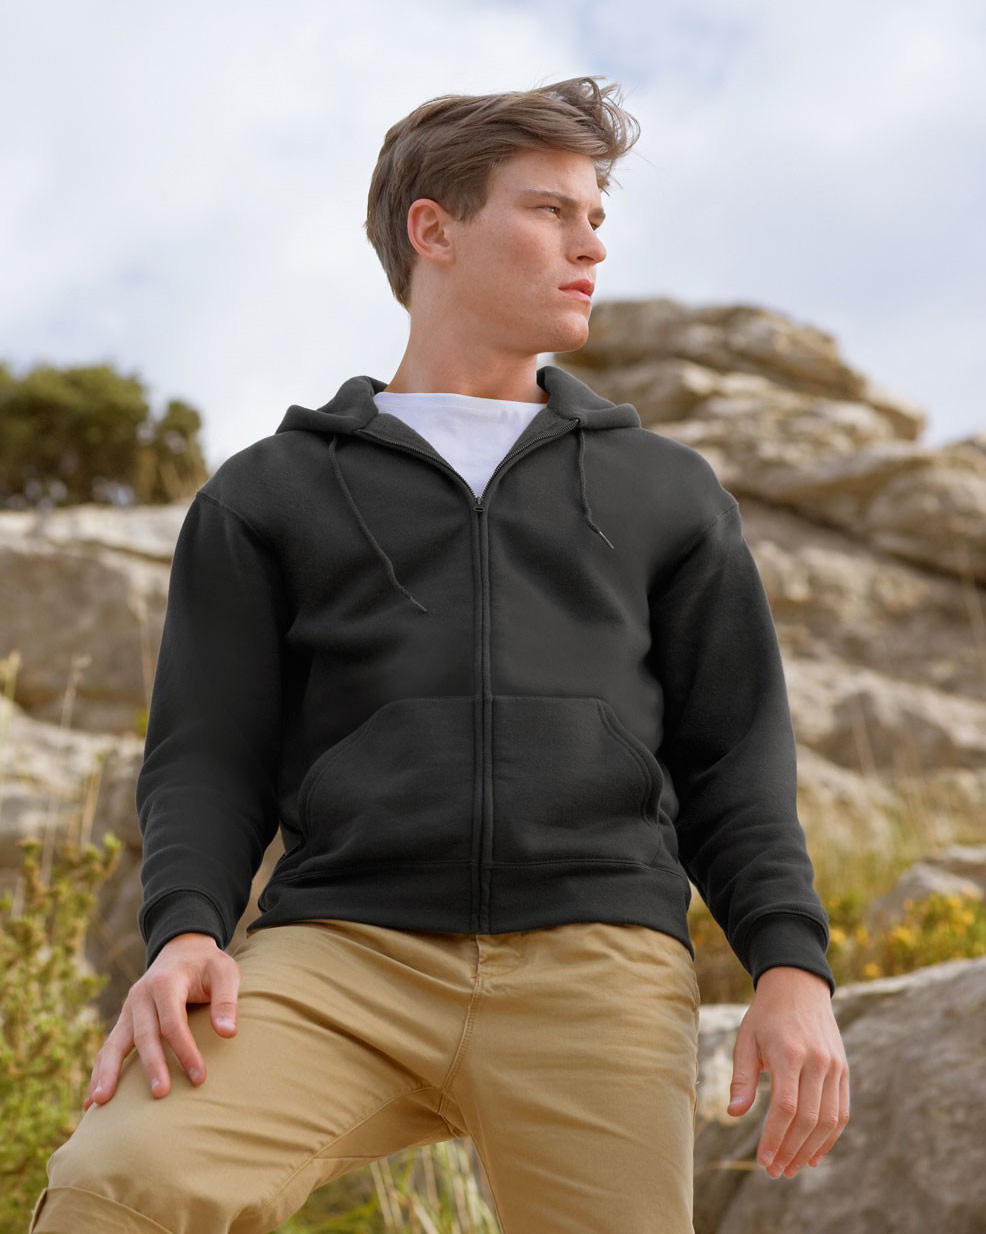 Fruit of the Loom Zip hoodie sweatshirt SC361C